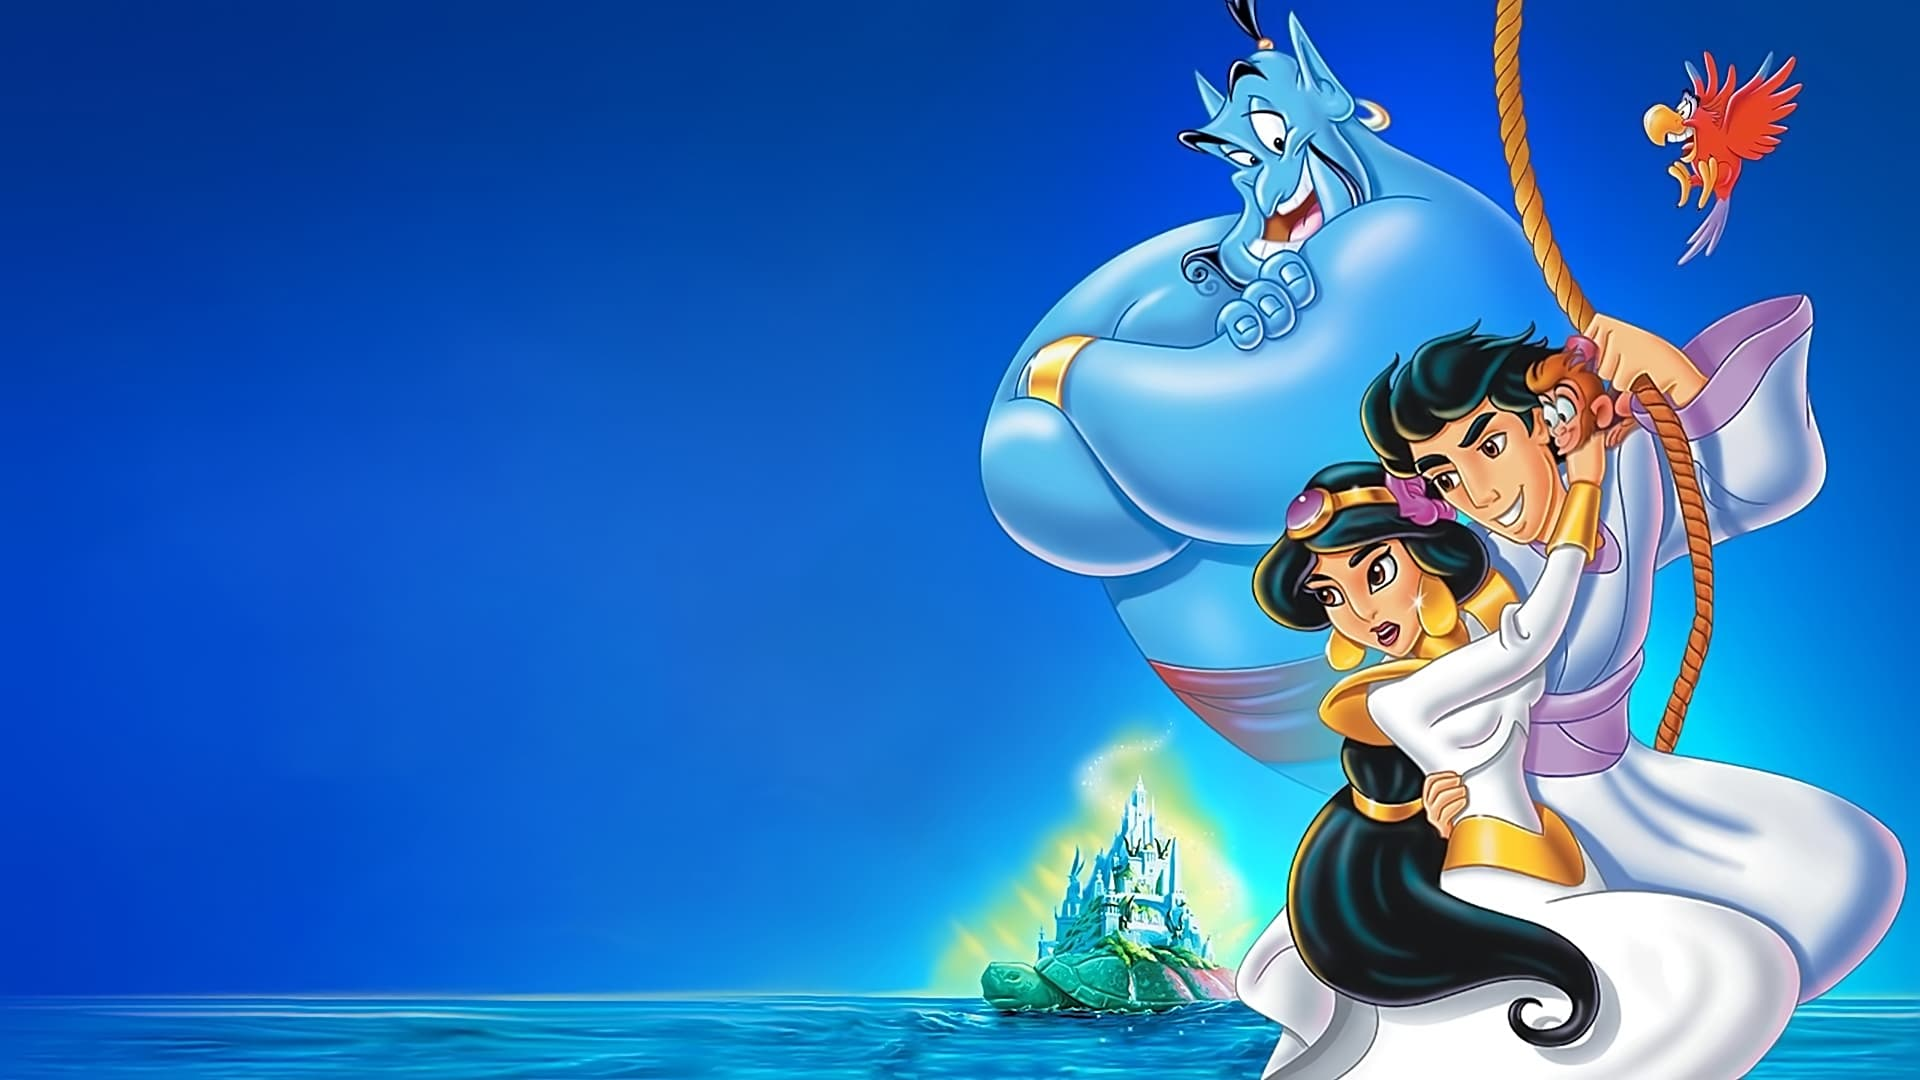 Aladdin and the King of Thieves Trailer